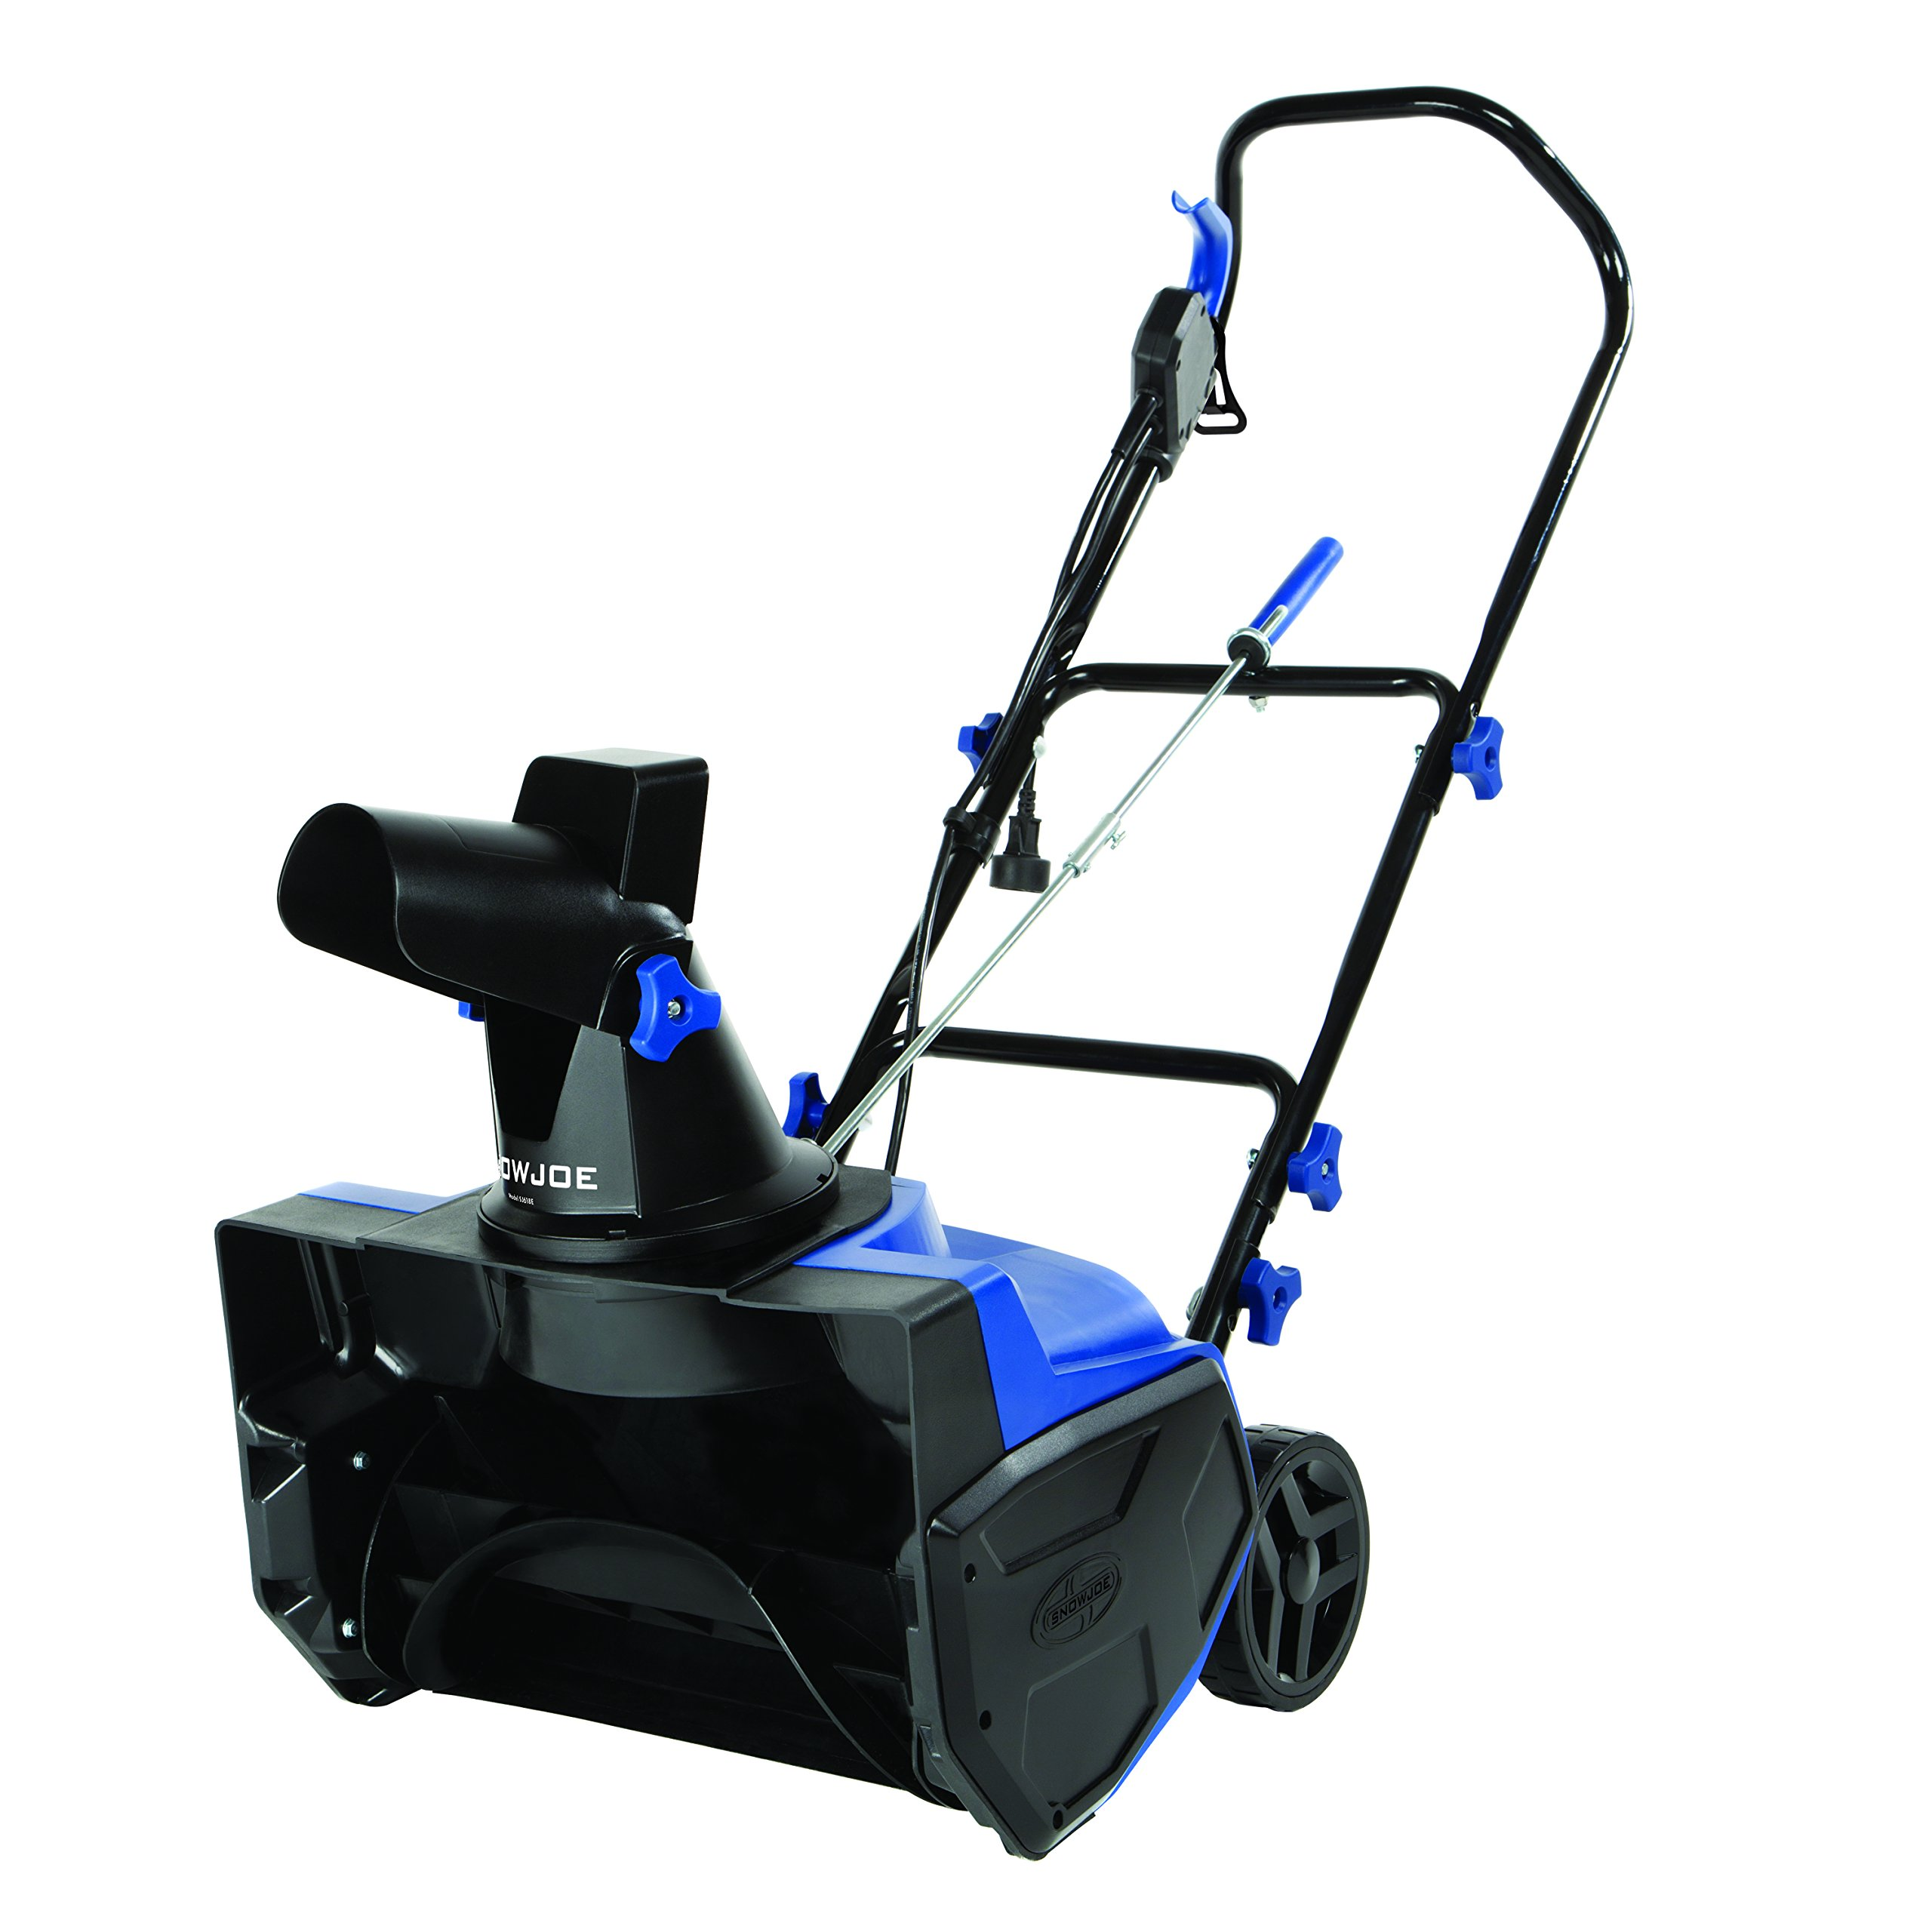 Snow Joe SJ618E 18'' 13 AMP Electric Snow Thrower